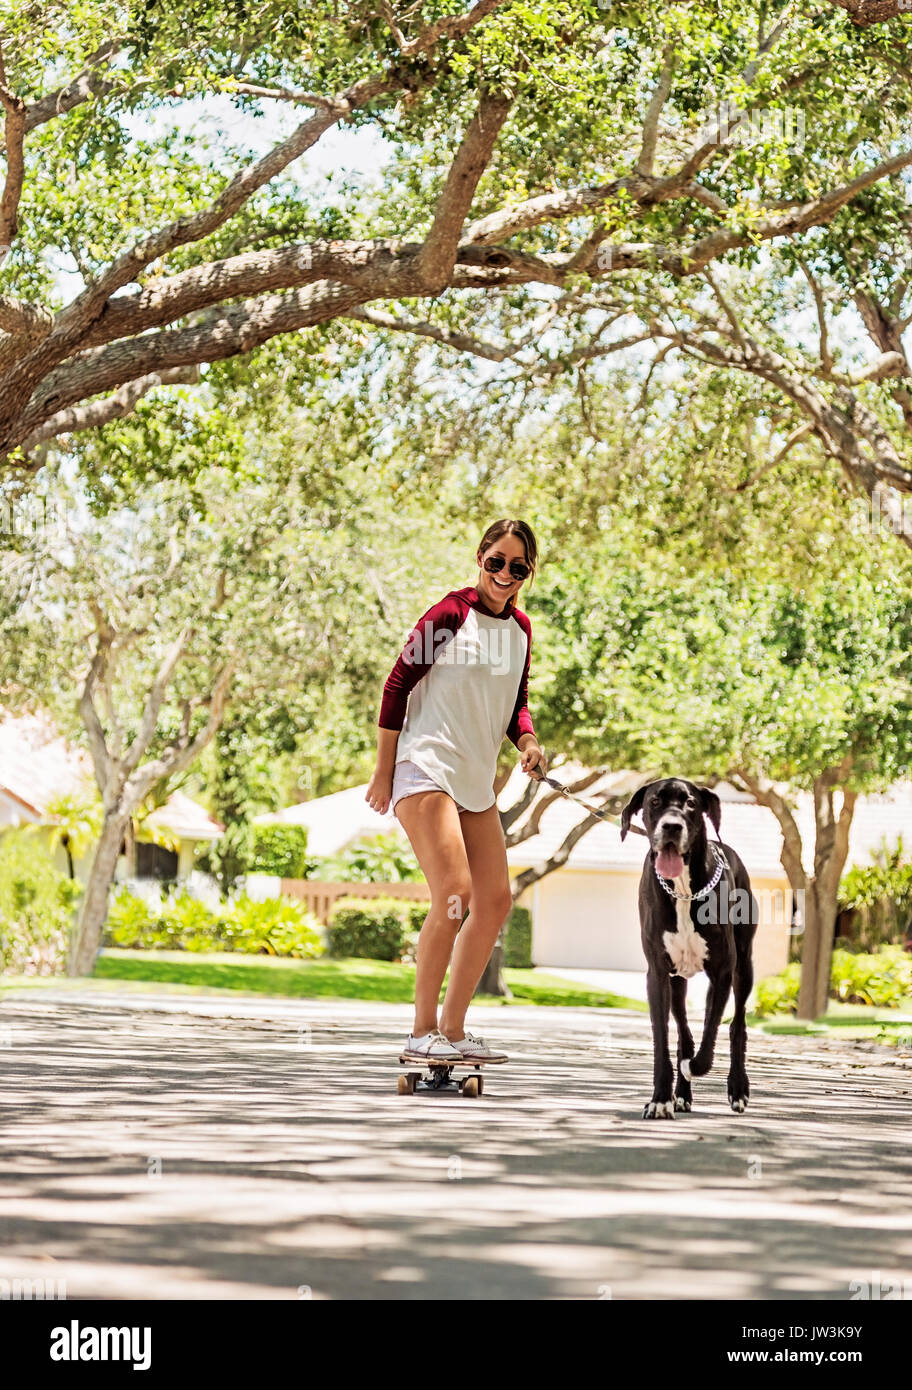 Woman on skate board with Great Dane - Stock Image